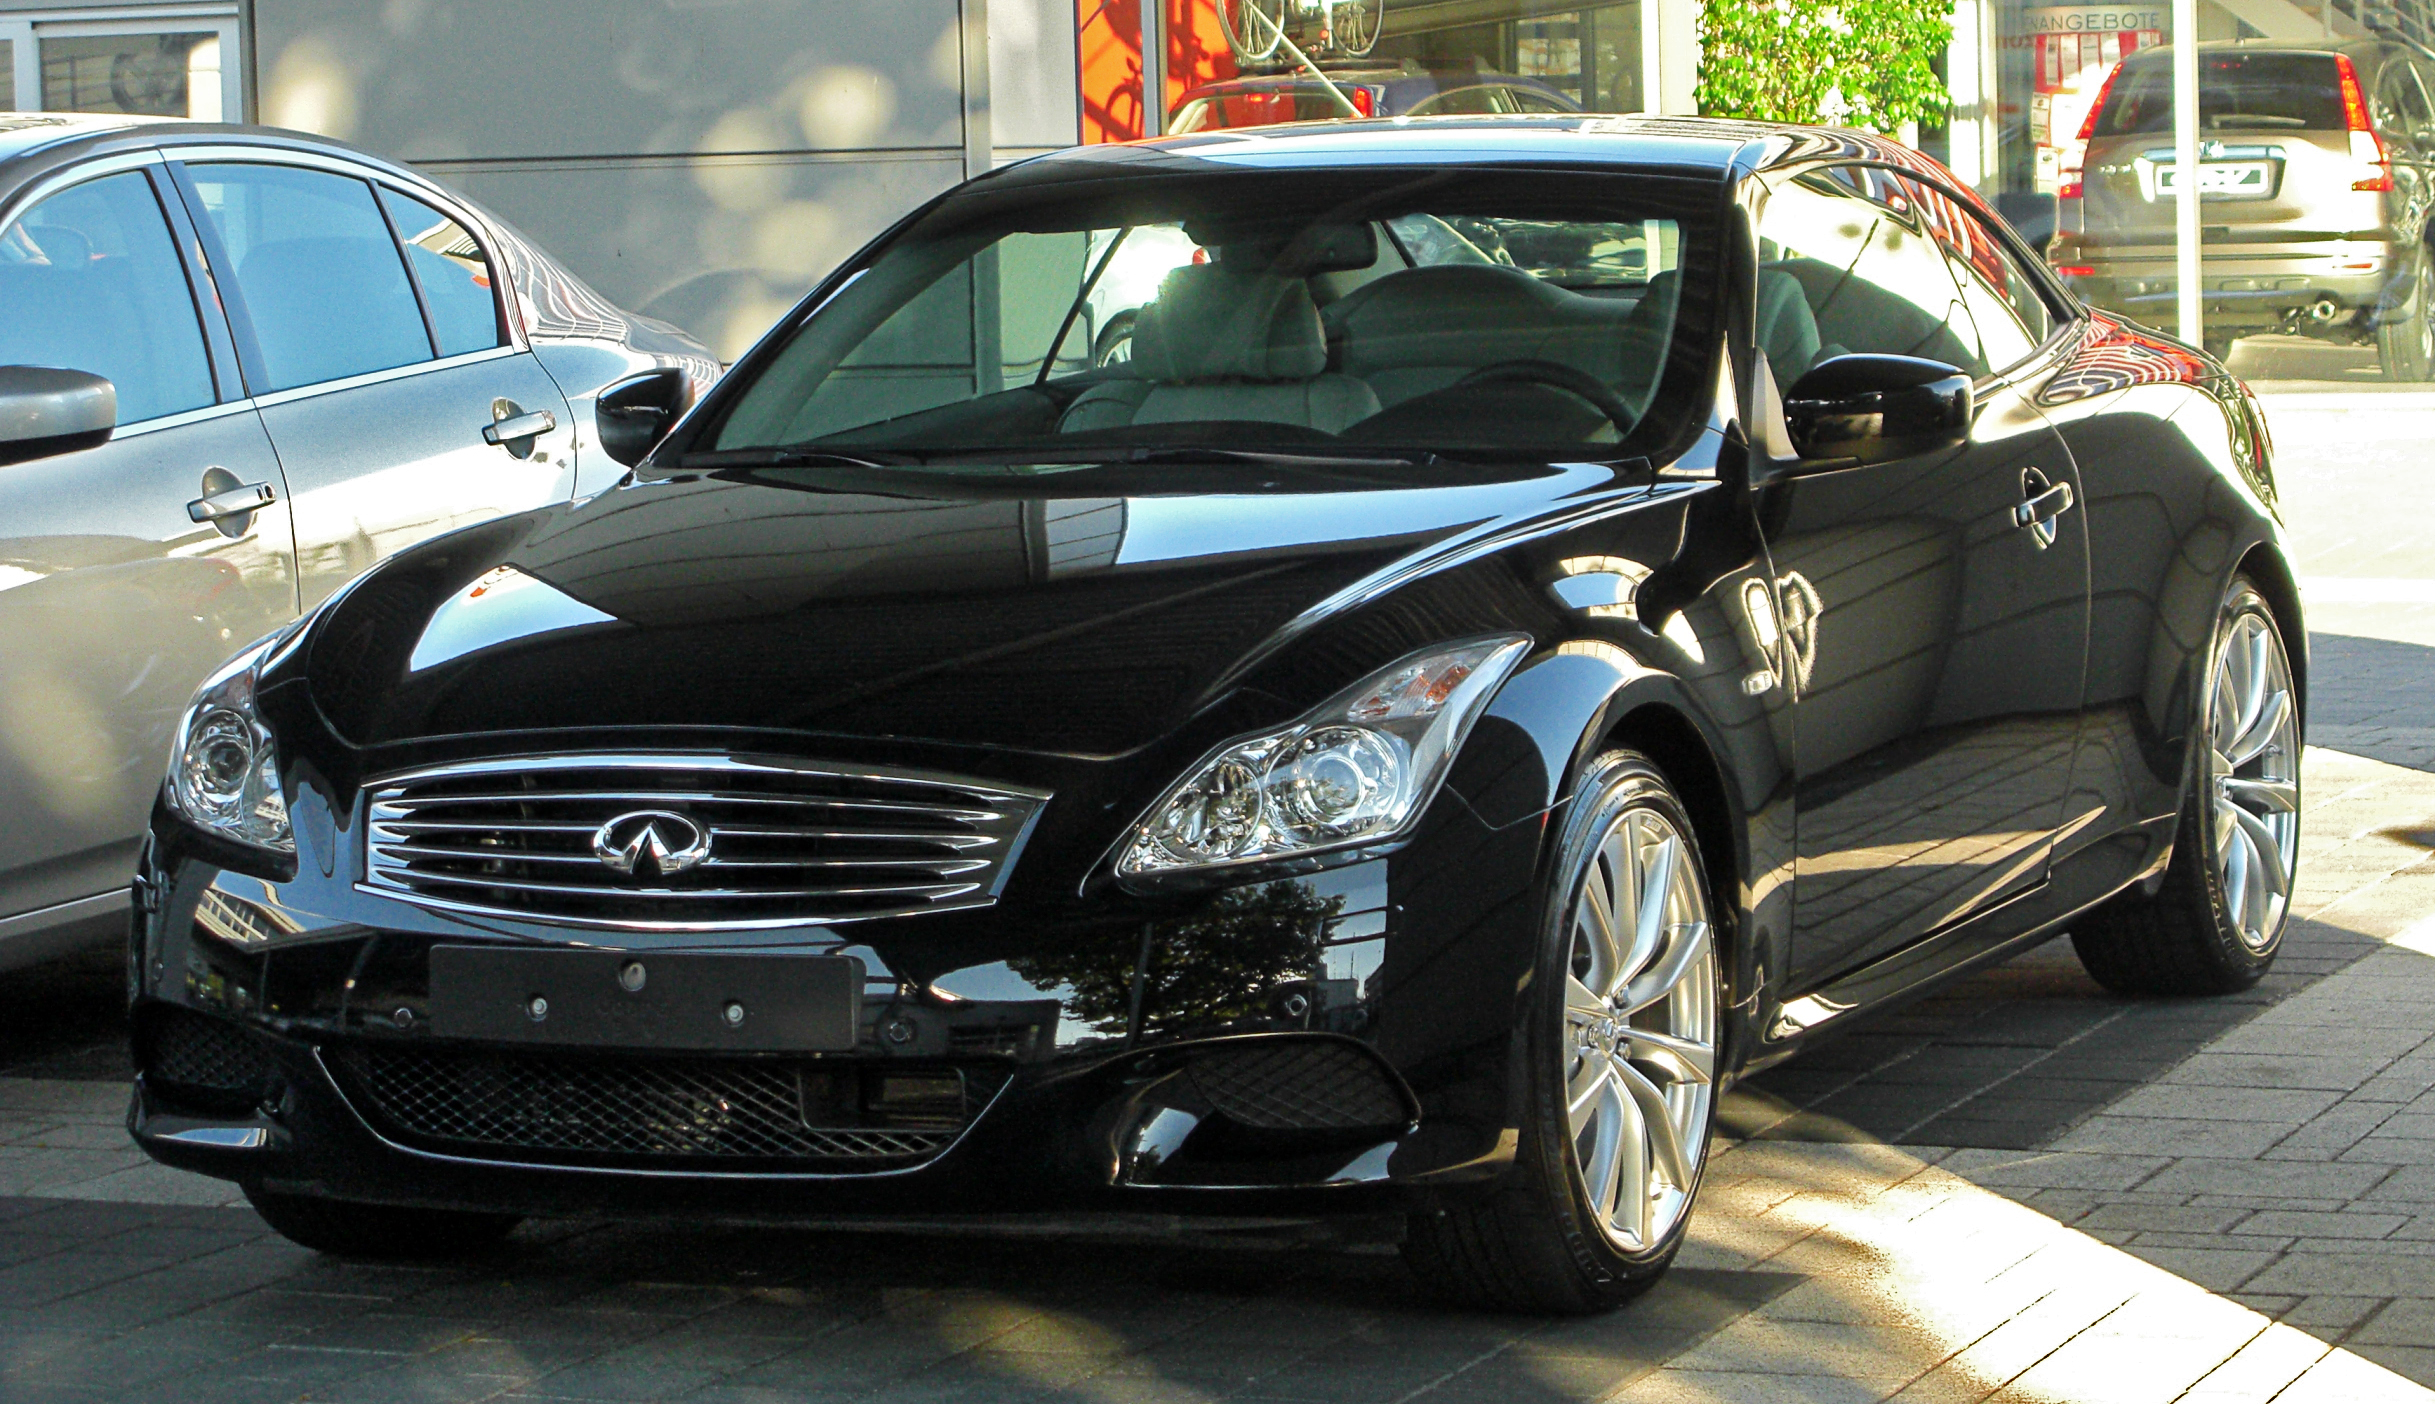 file infiniti g37 cabriolet v36 front wikimedia commons. Black Bedroom Furniture Sets. Home Design Ideas